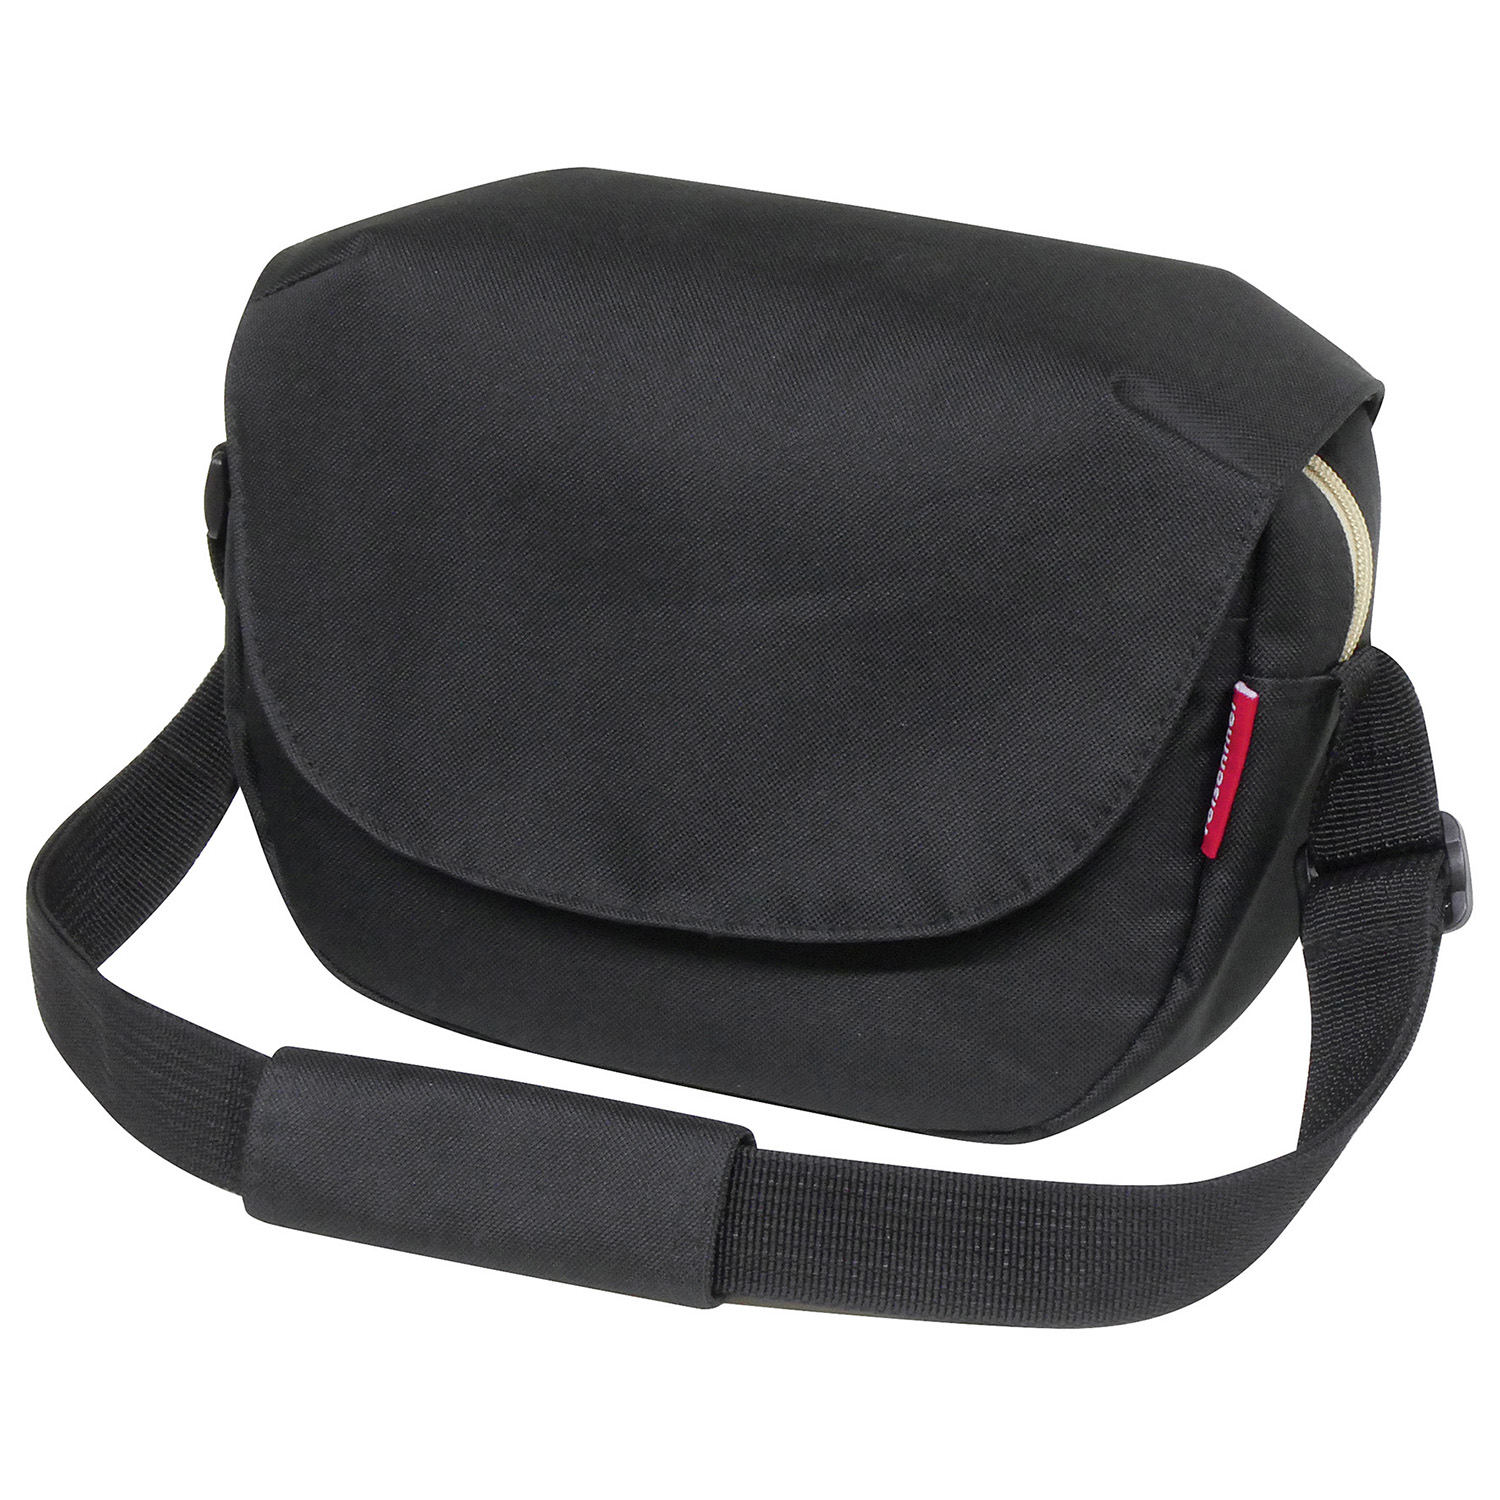 FunBag, Reisenthel bag with extra flat adapterplate